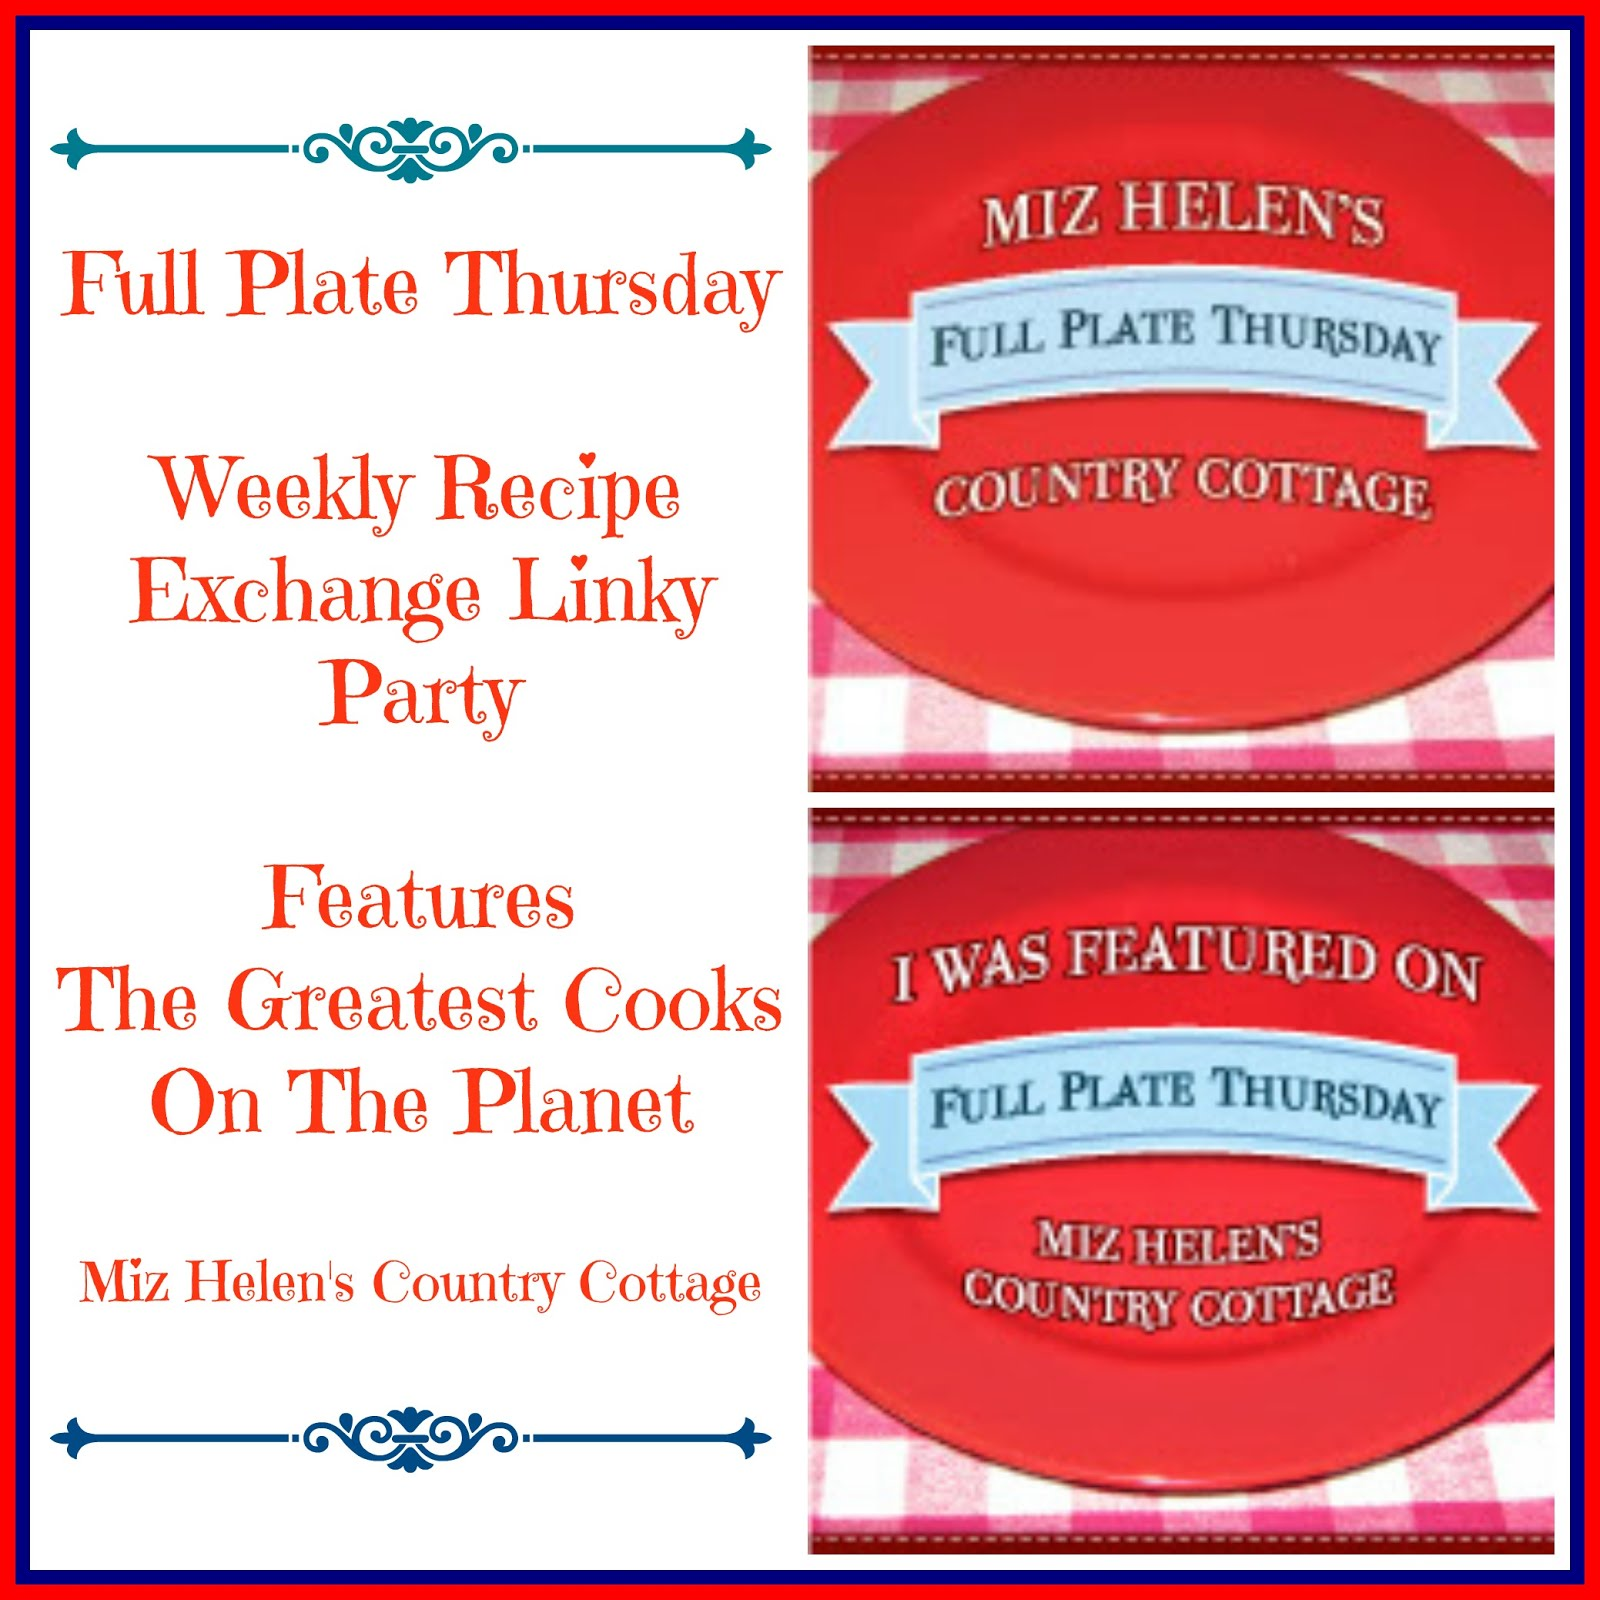 Full Plate Thursday,416 Current Party